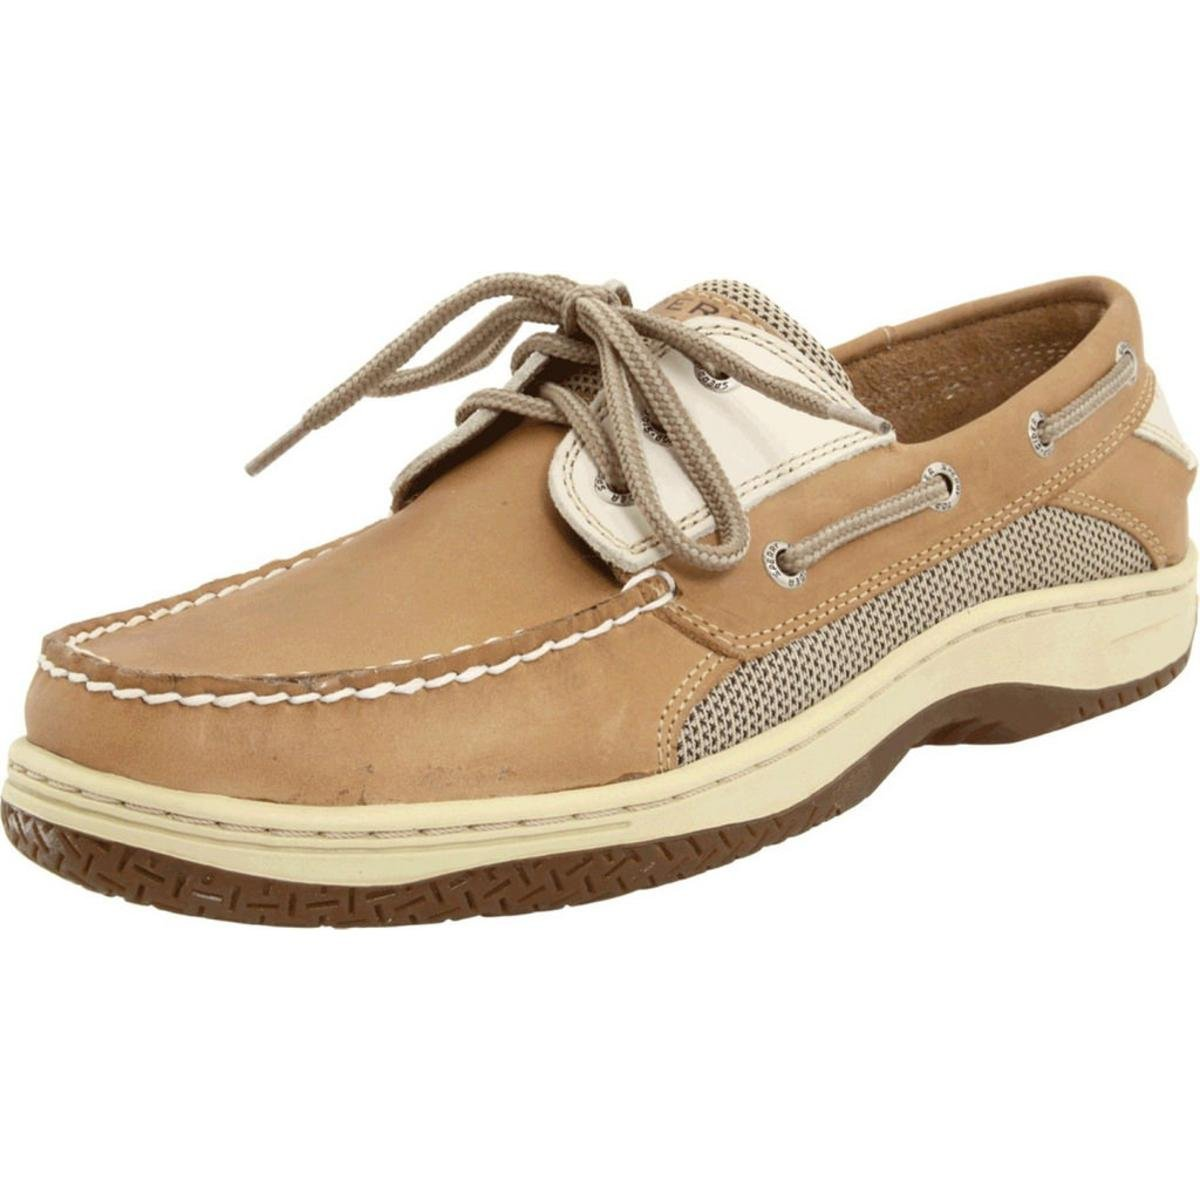 Sperry Top-Sider Men's Billfish 3-Eye Boat Shoe, Tan/Beige, 13 XW US by Sperry Top-Sider